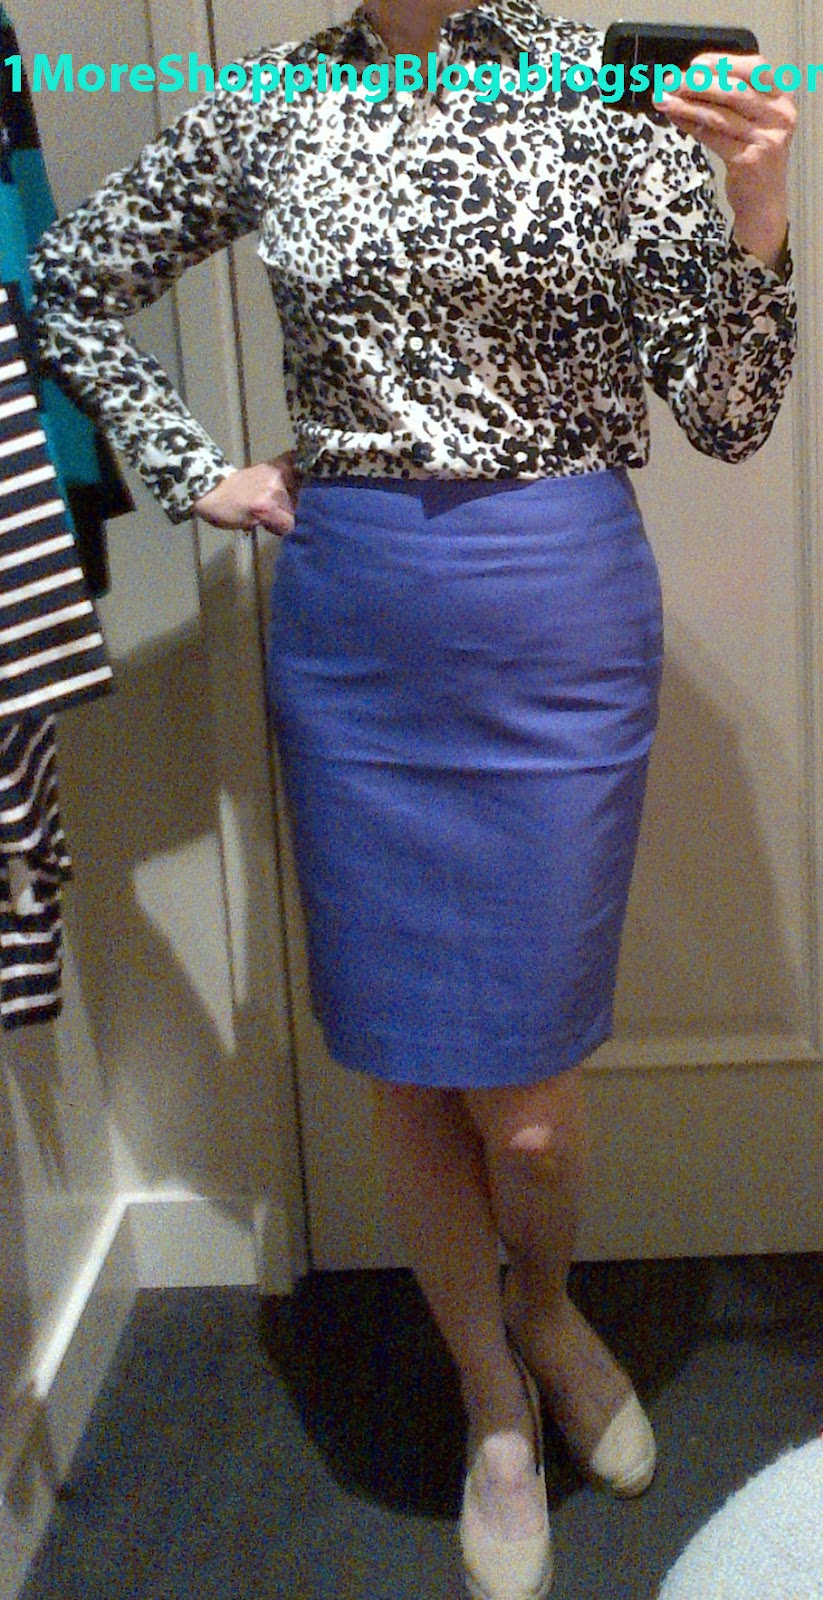 4a25fa8545 The skirt is the No. 2 Pencil Skirt in Double-Serge Cotton size 2 and  'marrakech purple.' It looks blue on my monitor, but it is purple in real  life.